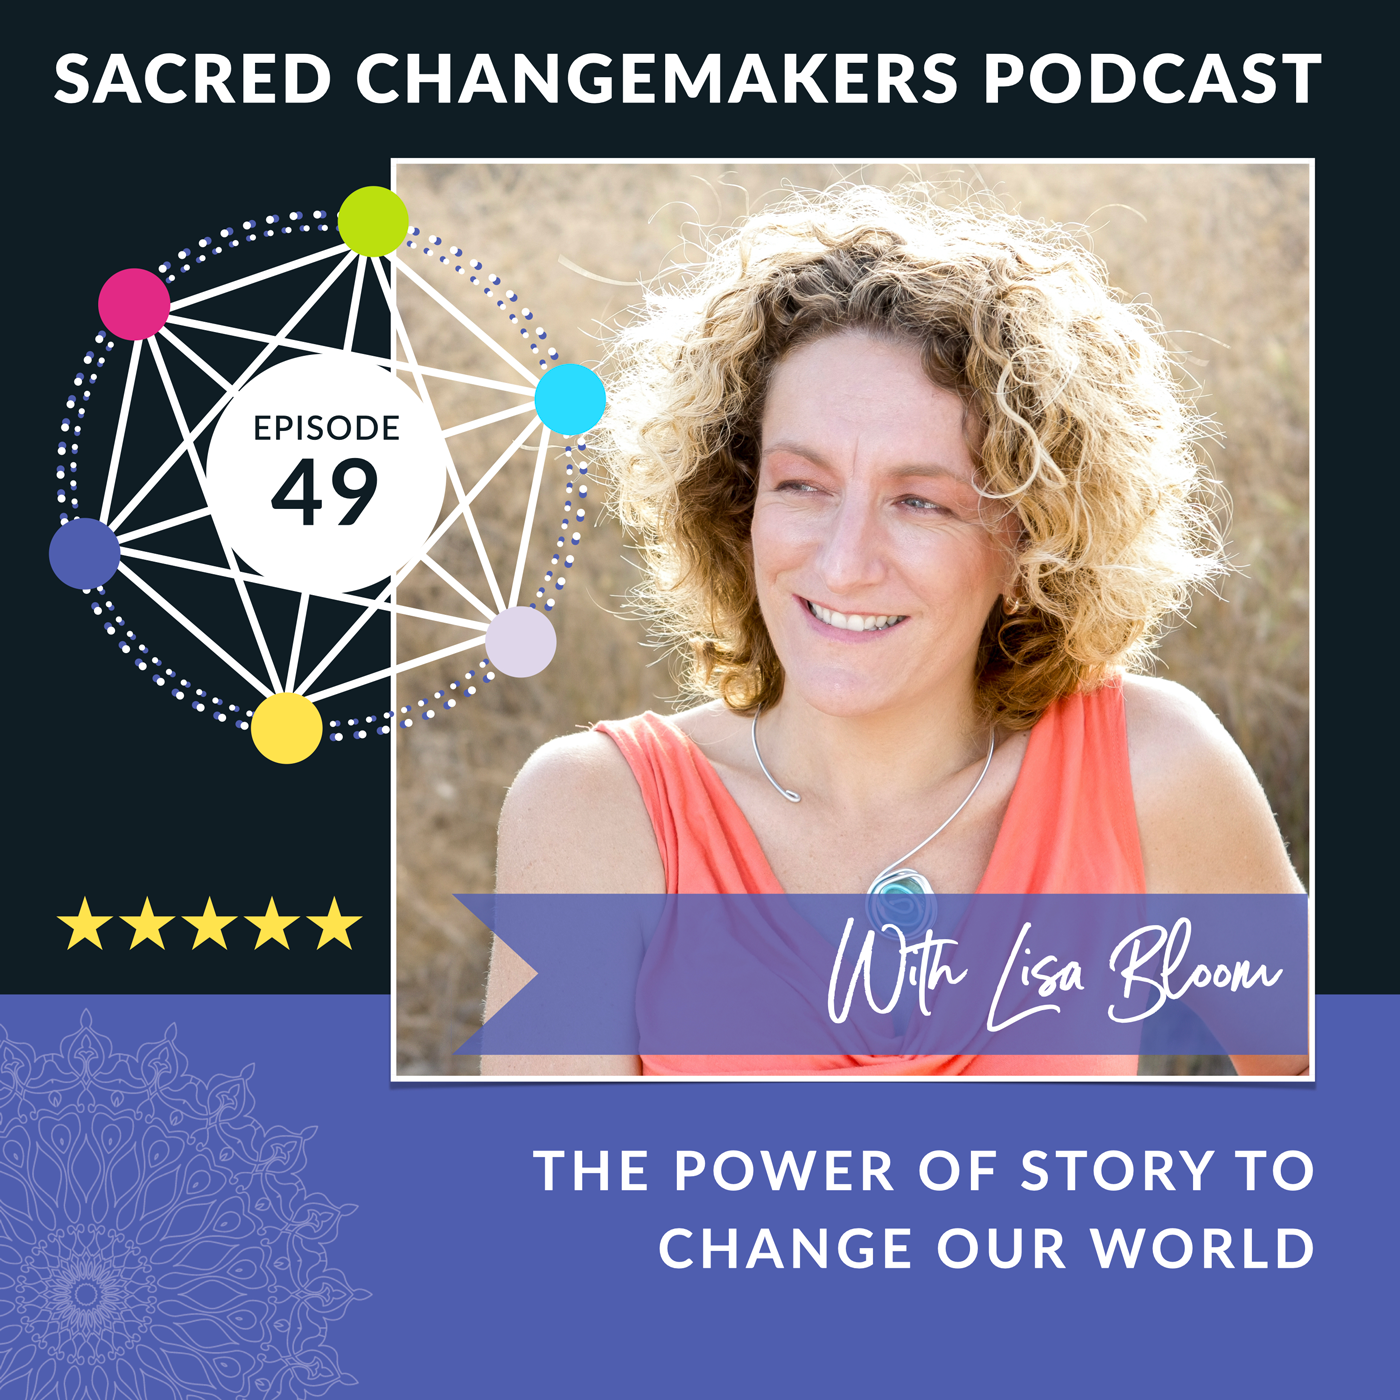 Image of Lisa Bloom for the Sacred Changemakers Podcast